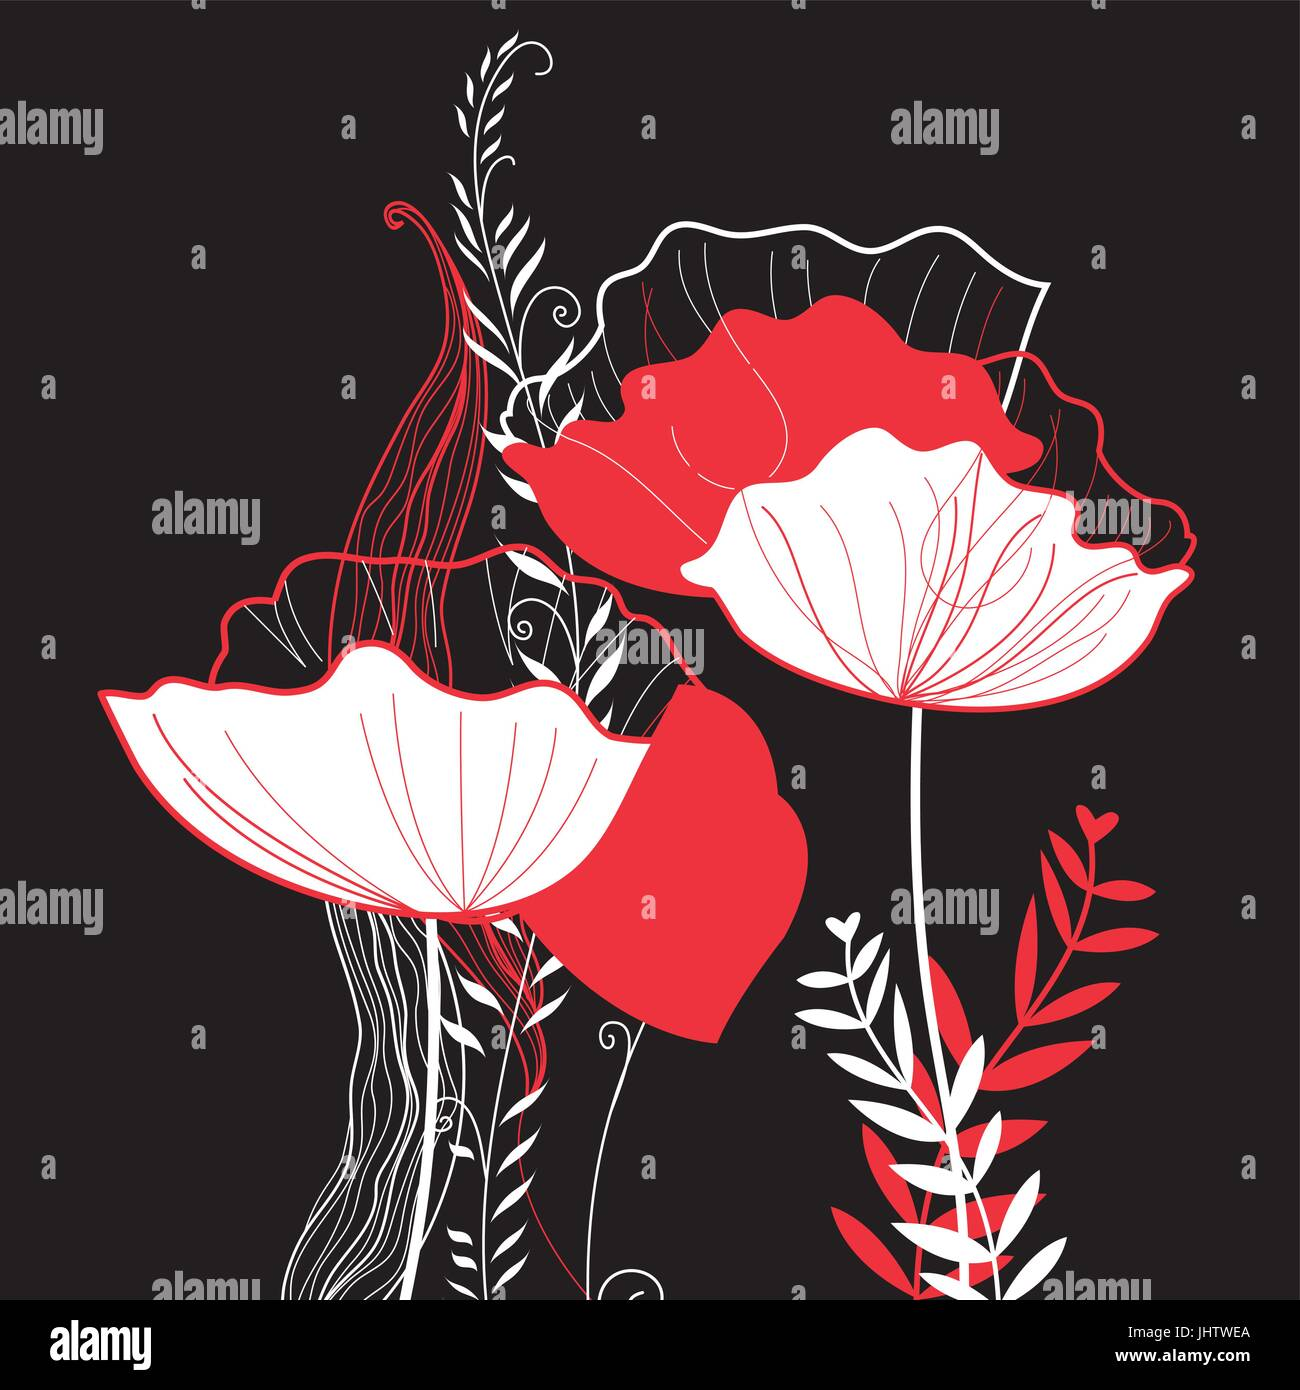 Vibrant vector greeting card with poppies on a dark background - Stock Vector